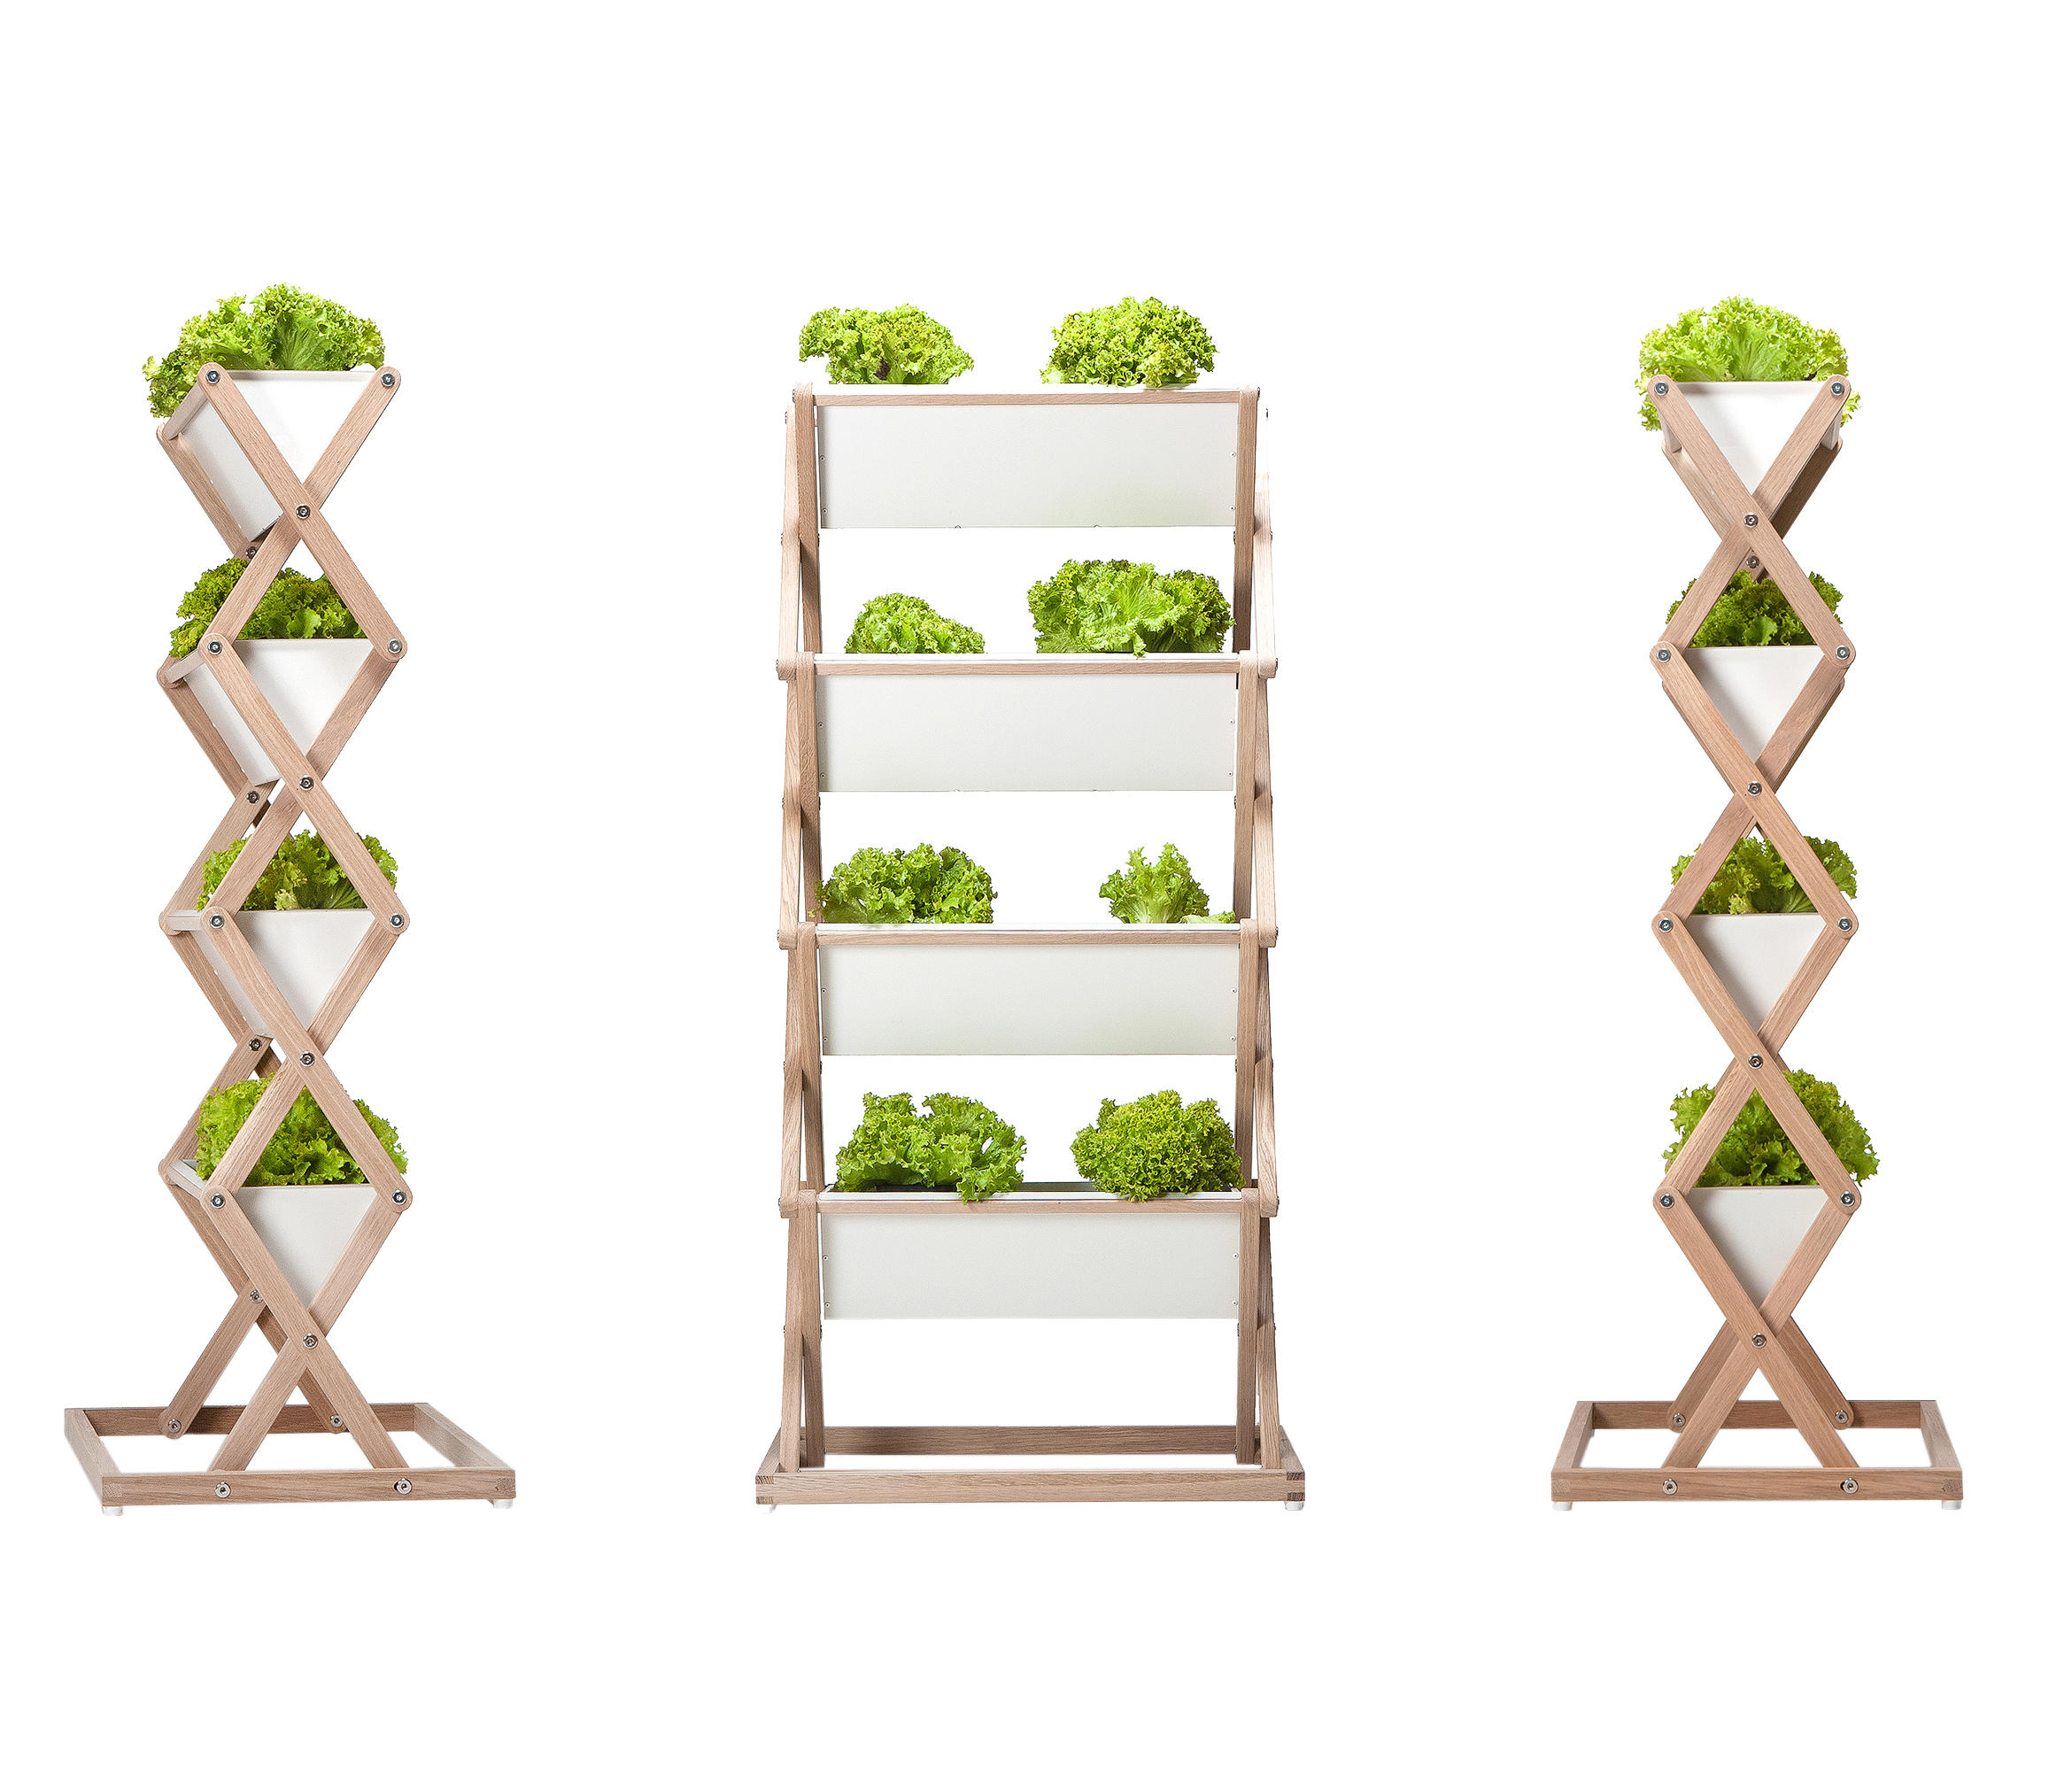 vertical garden 1.20 - shelves from urbanature | architonic, Gartenarbeit ideen